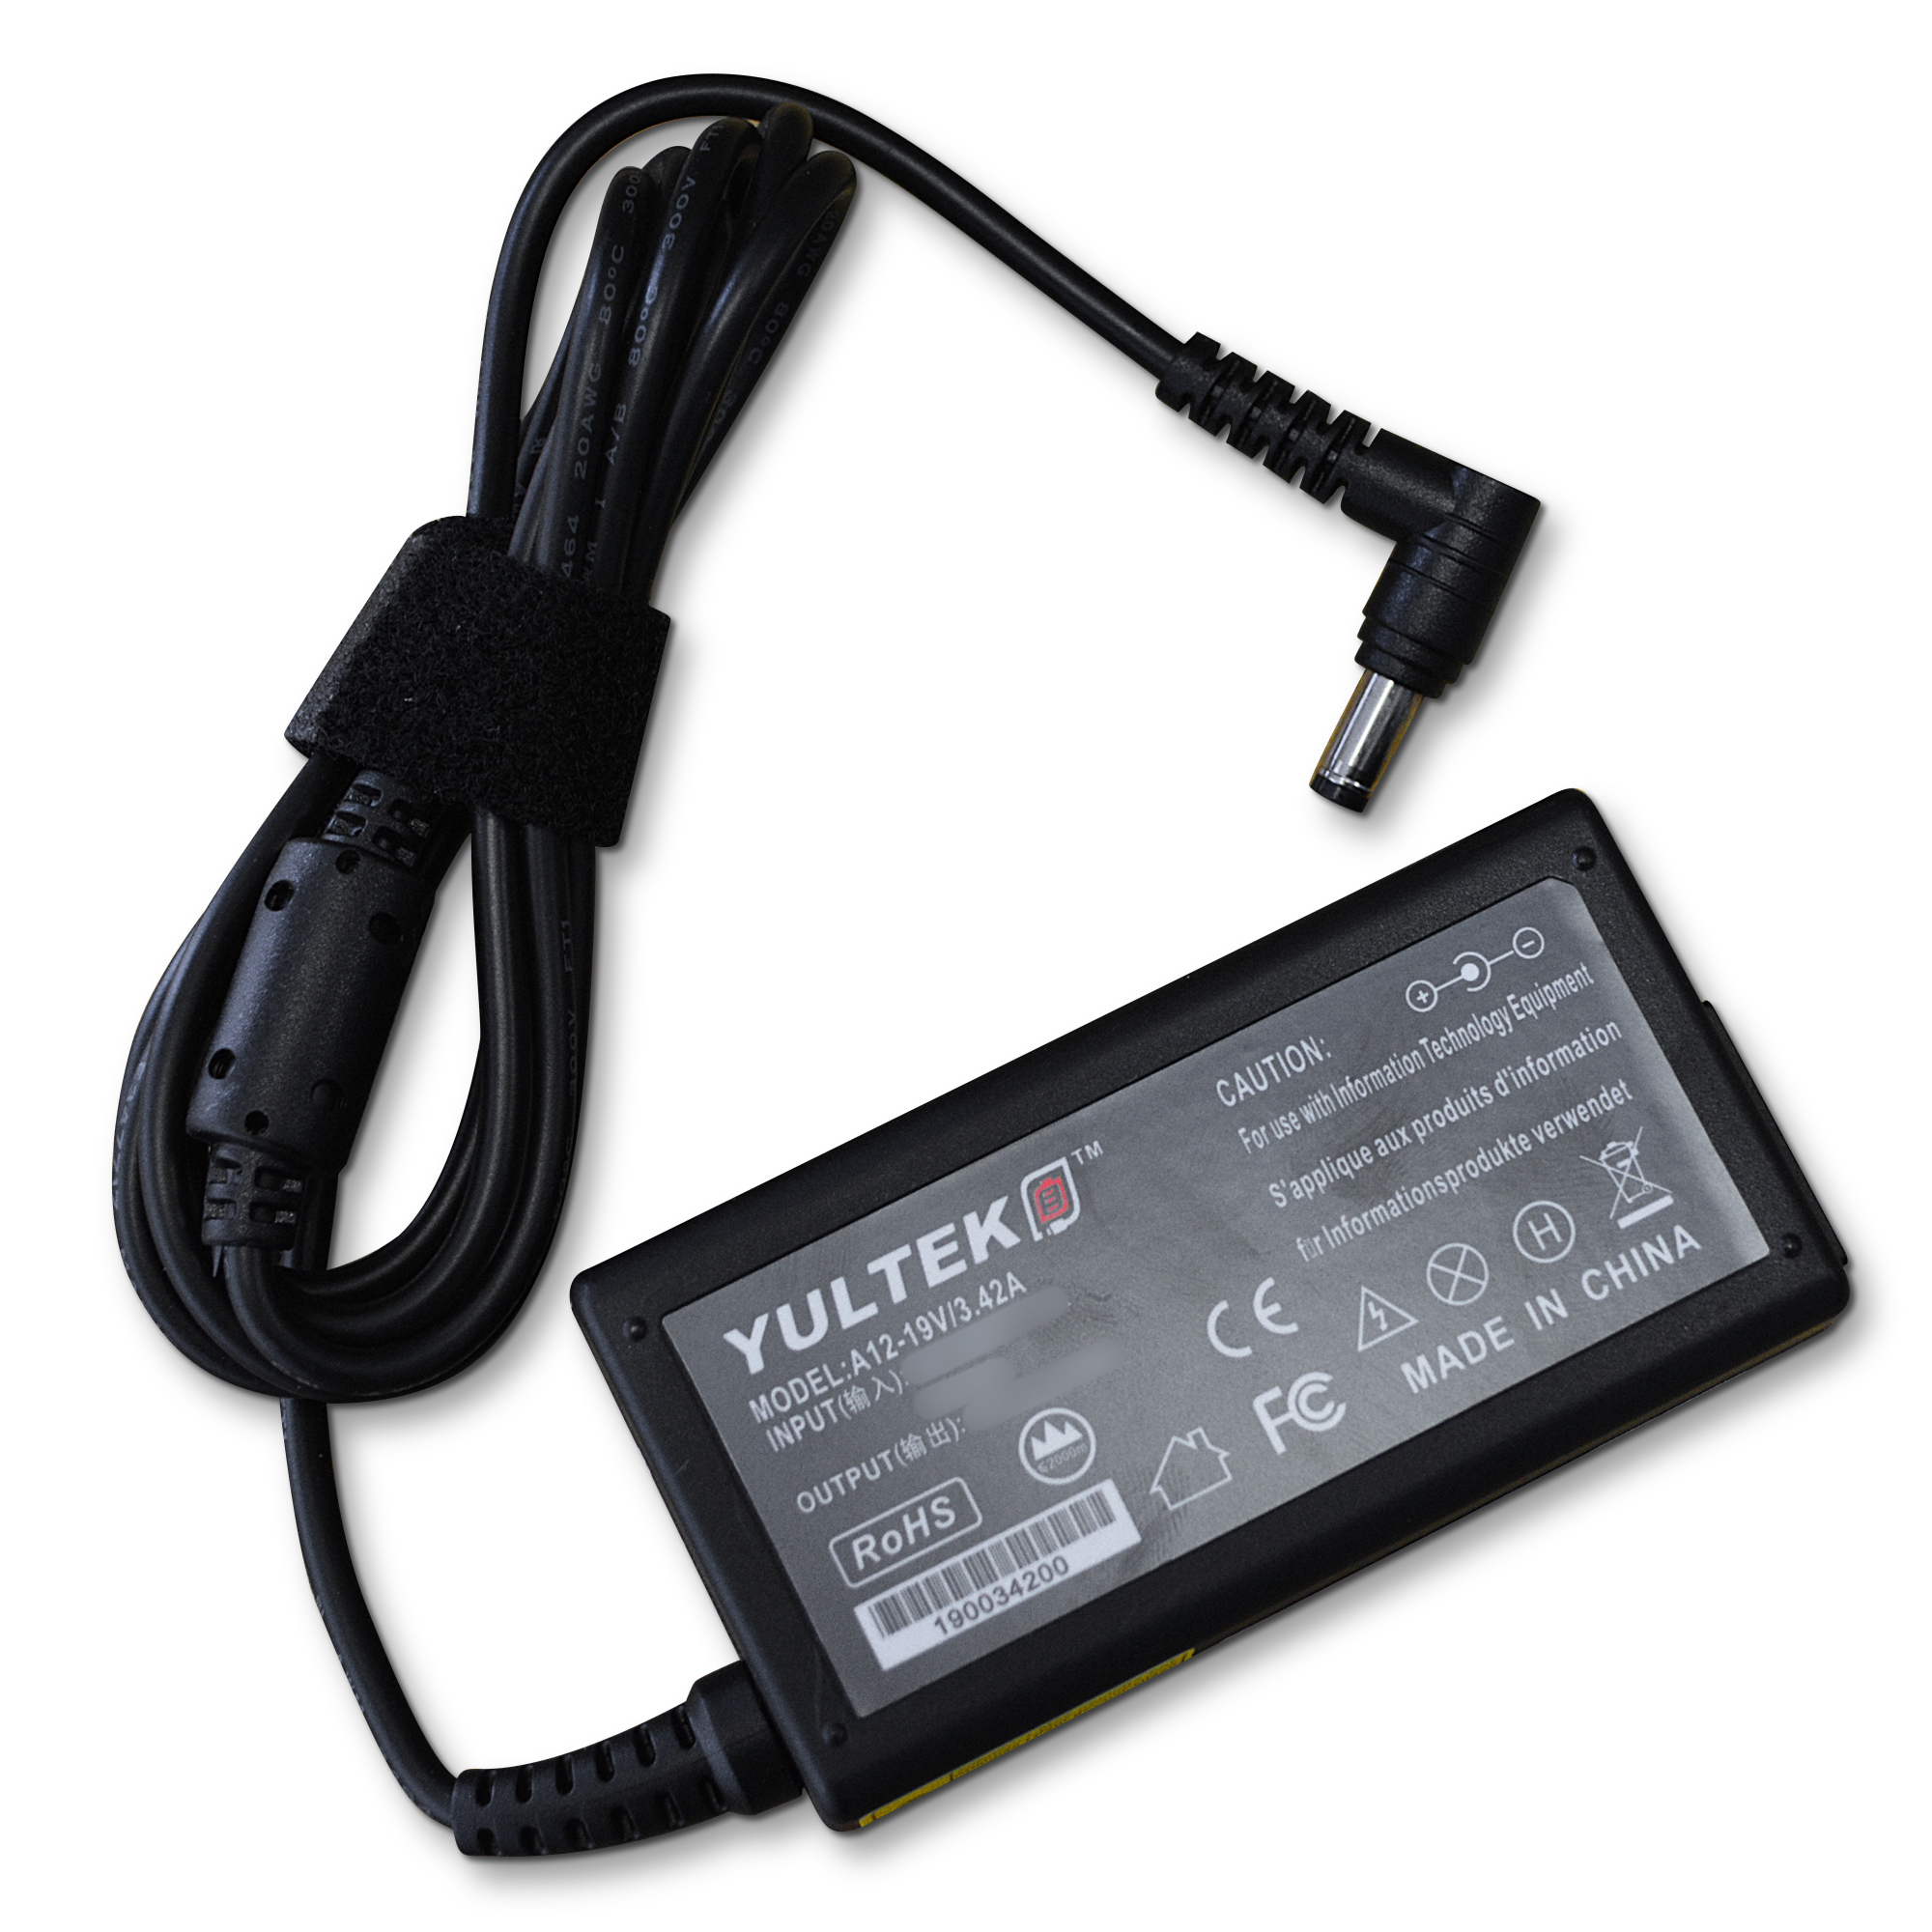 Fujitsu-Siemens Part Number 1ACYZZZFX31 Laptop Charger